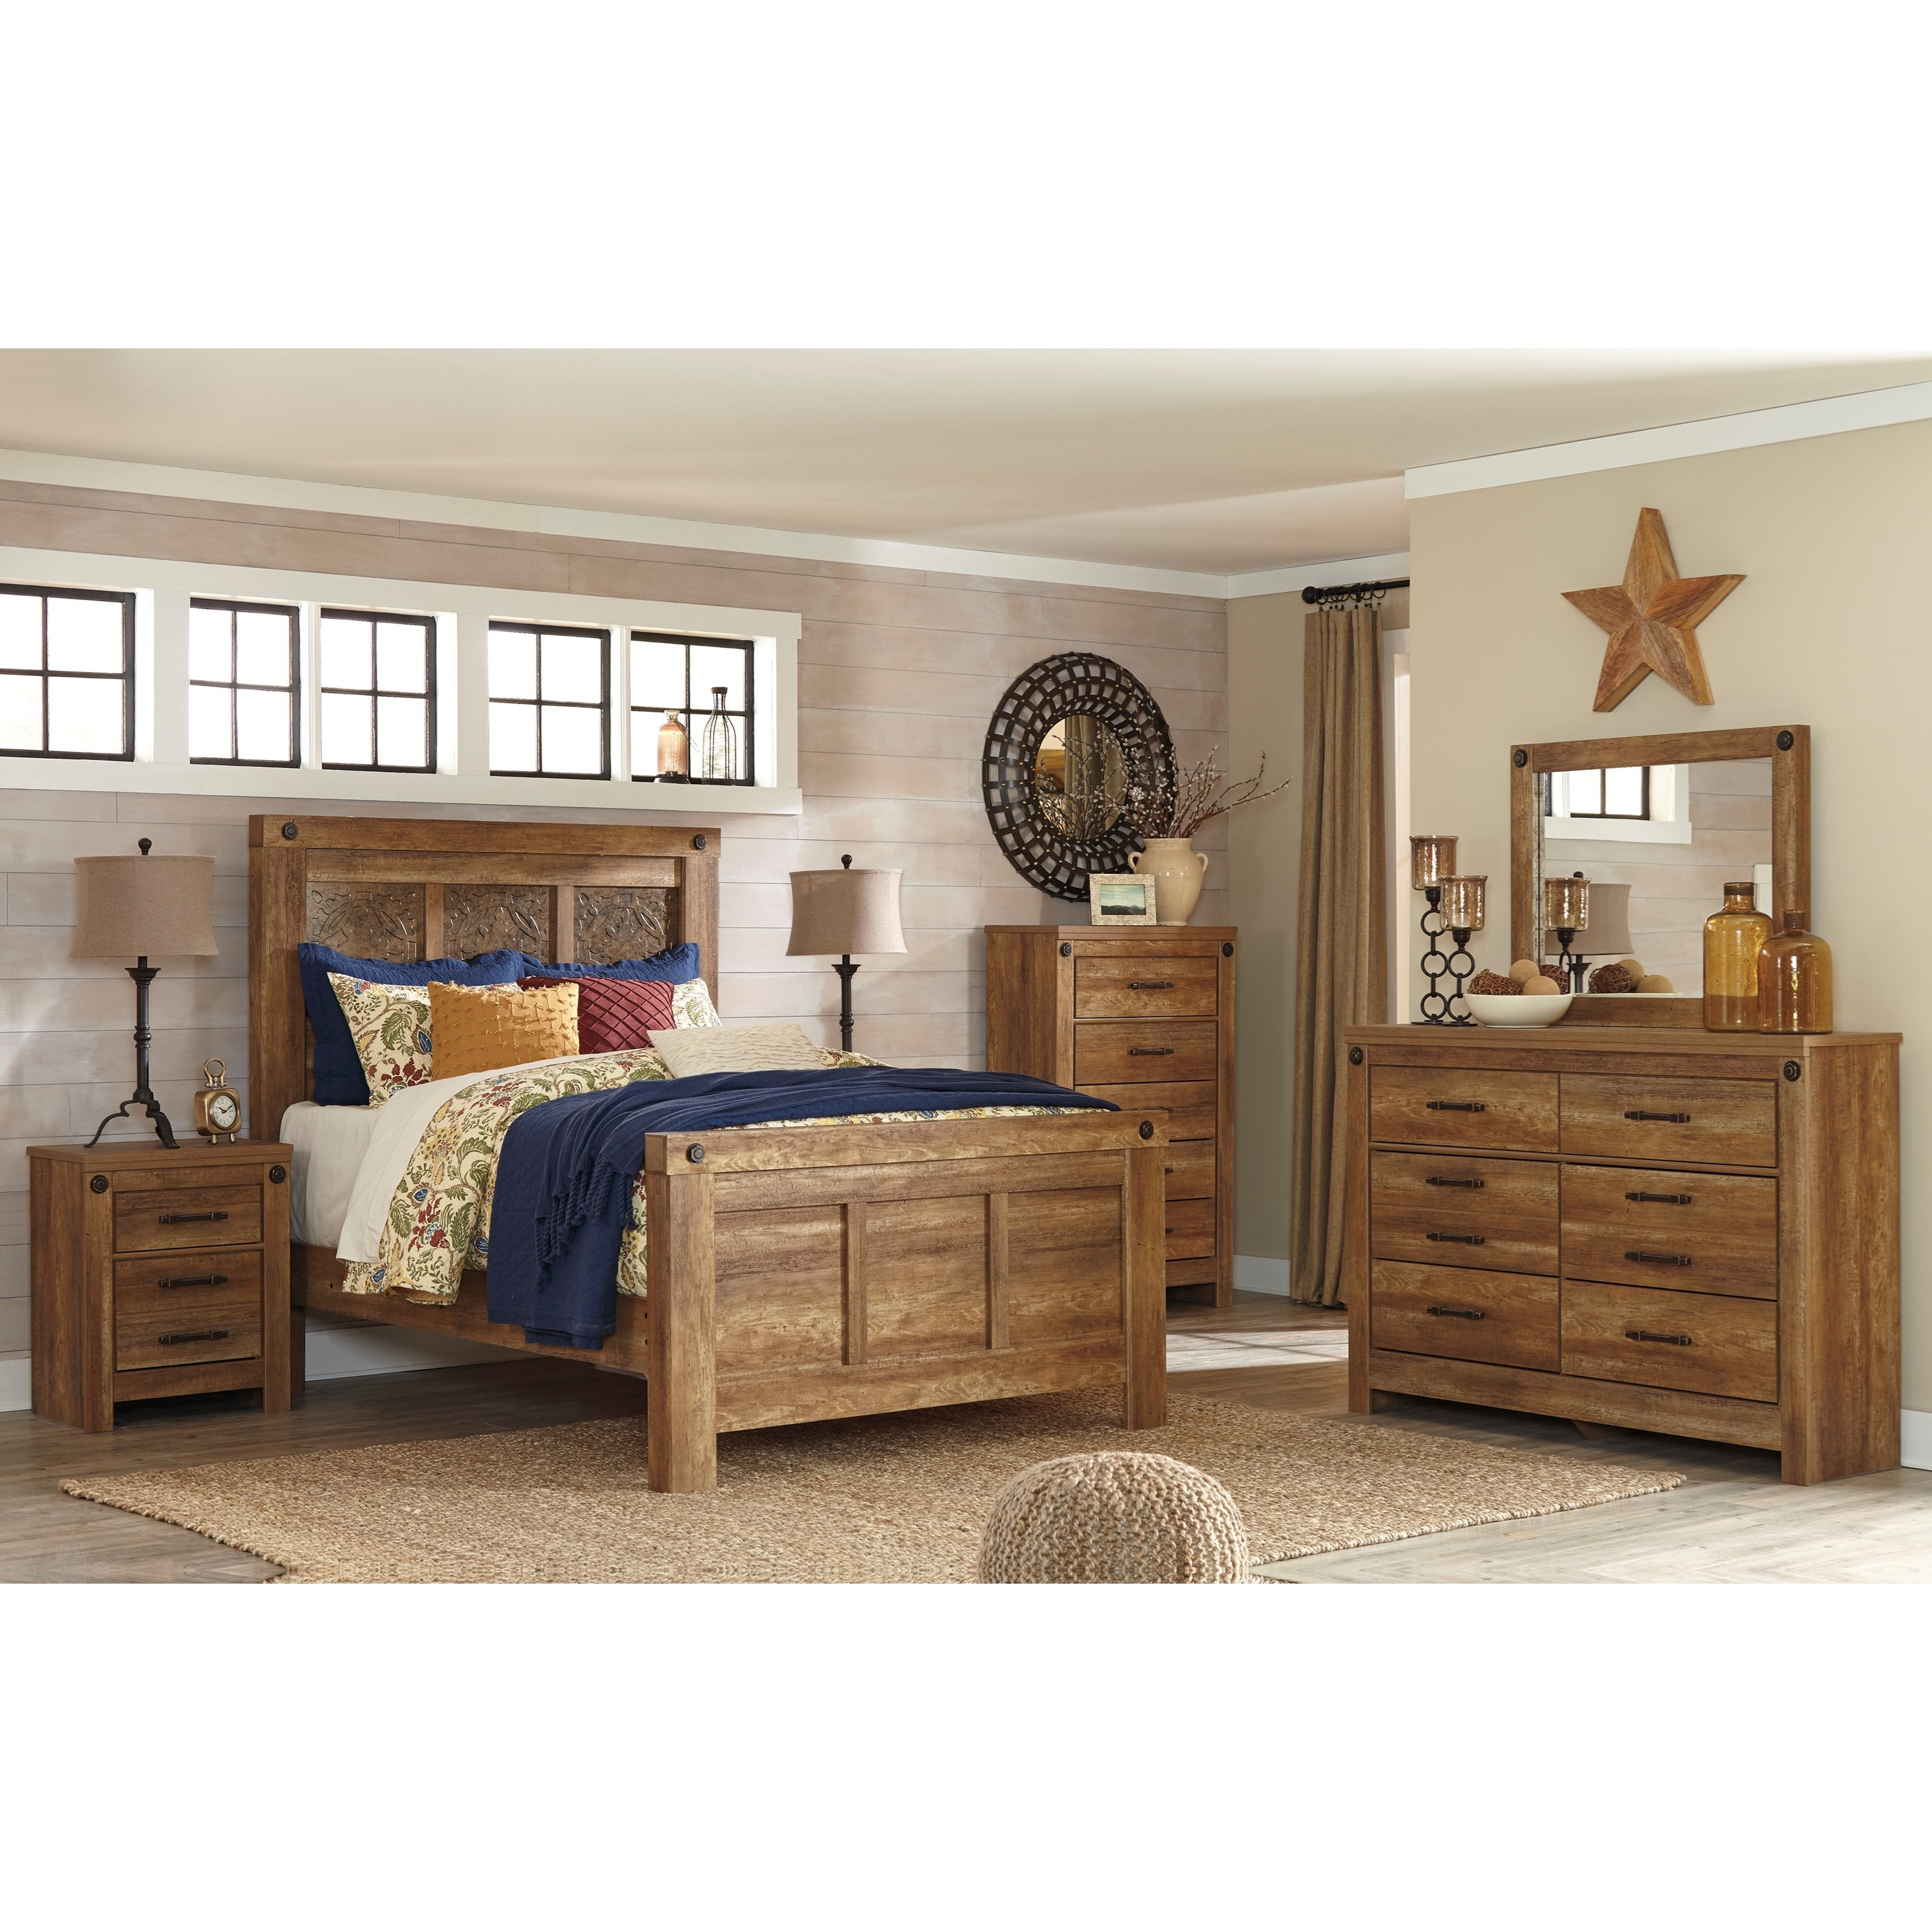 signature design by ashley ladimier queen mansion bed with rustic look